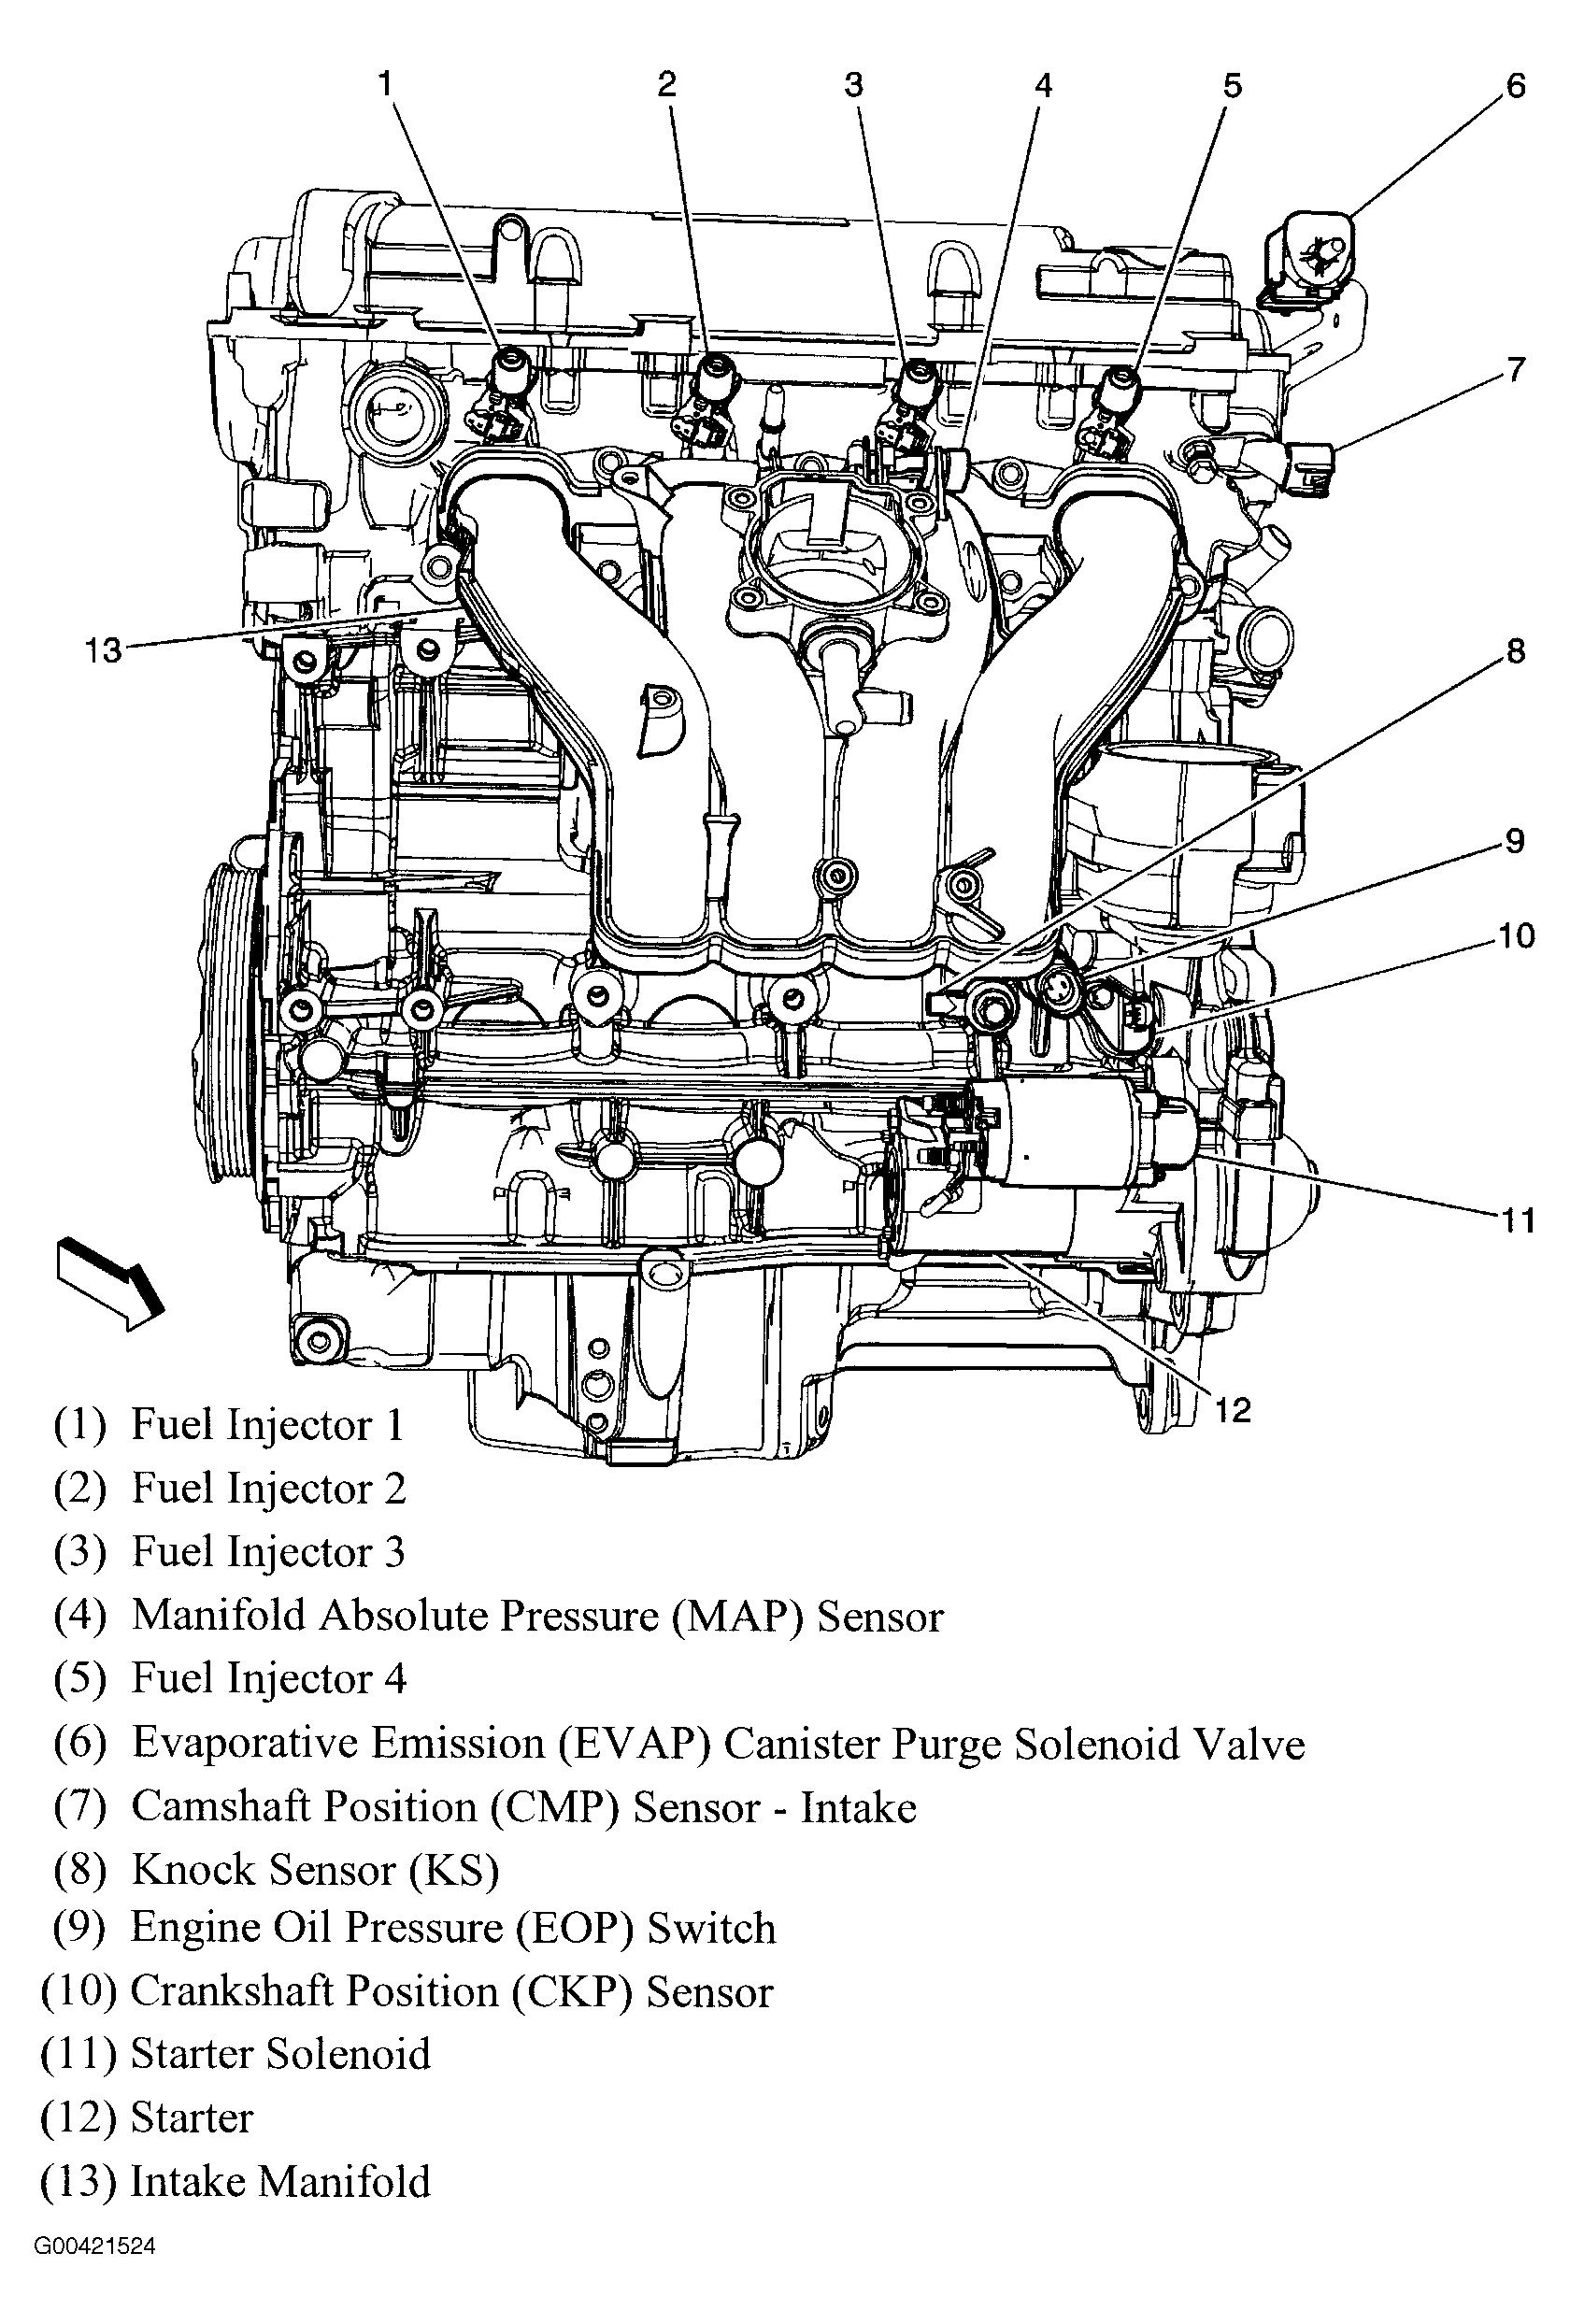 2012 Chevy Equinox Fuse Diagram Starting Know About Wiring Interior Box 2006 Hhr 2 Ecotec Network Engine